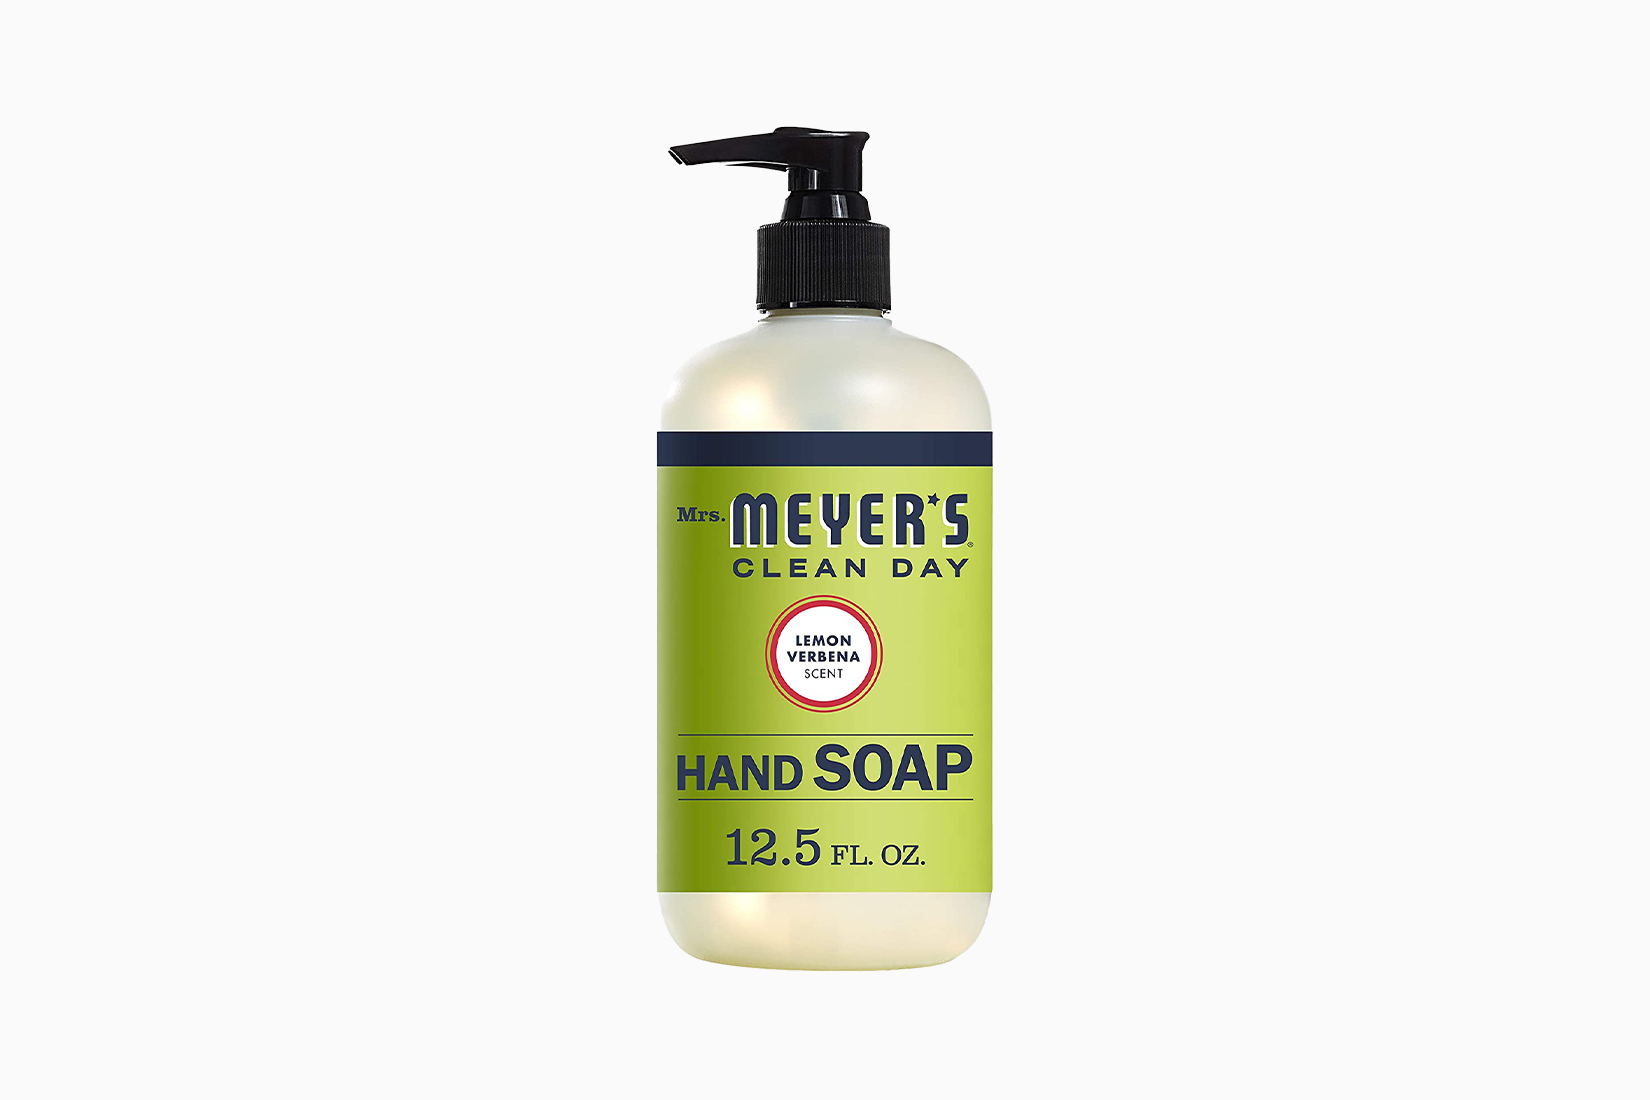 best hand soap mrs meyer's review - Luxe Digital